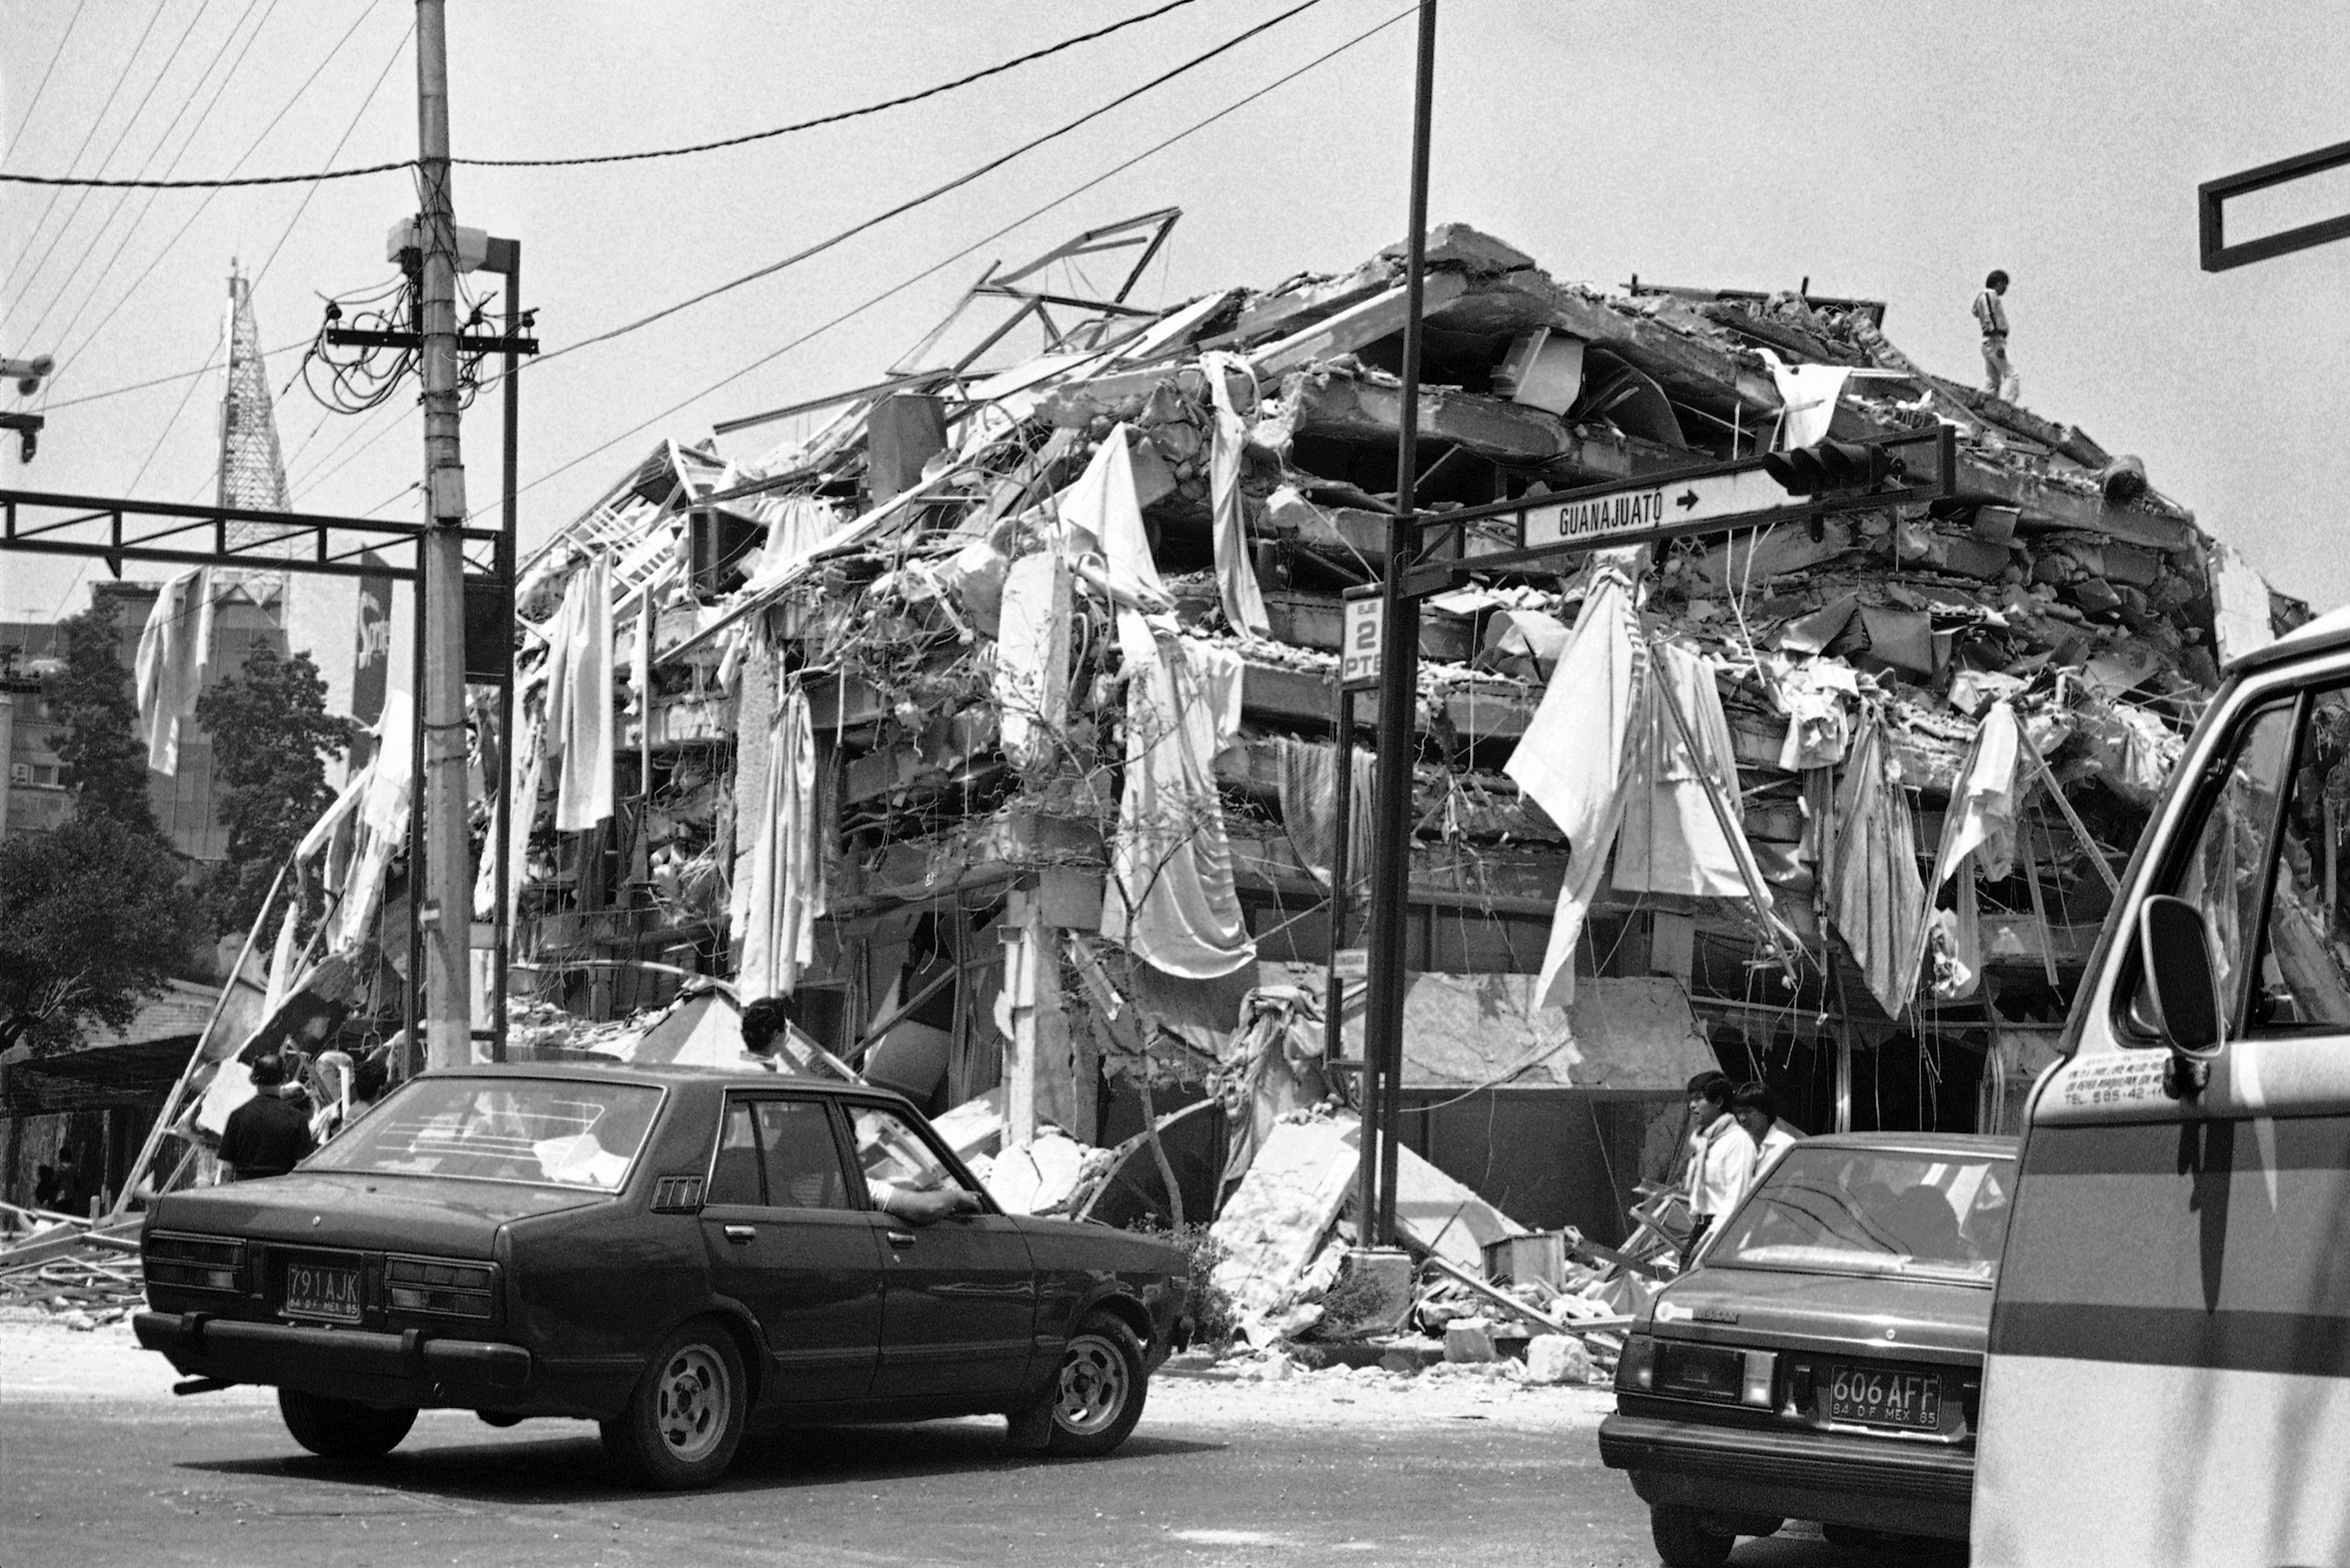 Cars and onlookers pass by a building that is covered with drapery from the windows after it was reduced to rubble after a strong earthquake rumbled through Mexico City, Sept. 20, 1985. (AP Photo/Ed Kolenovsky)